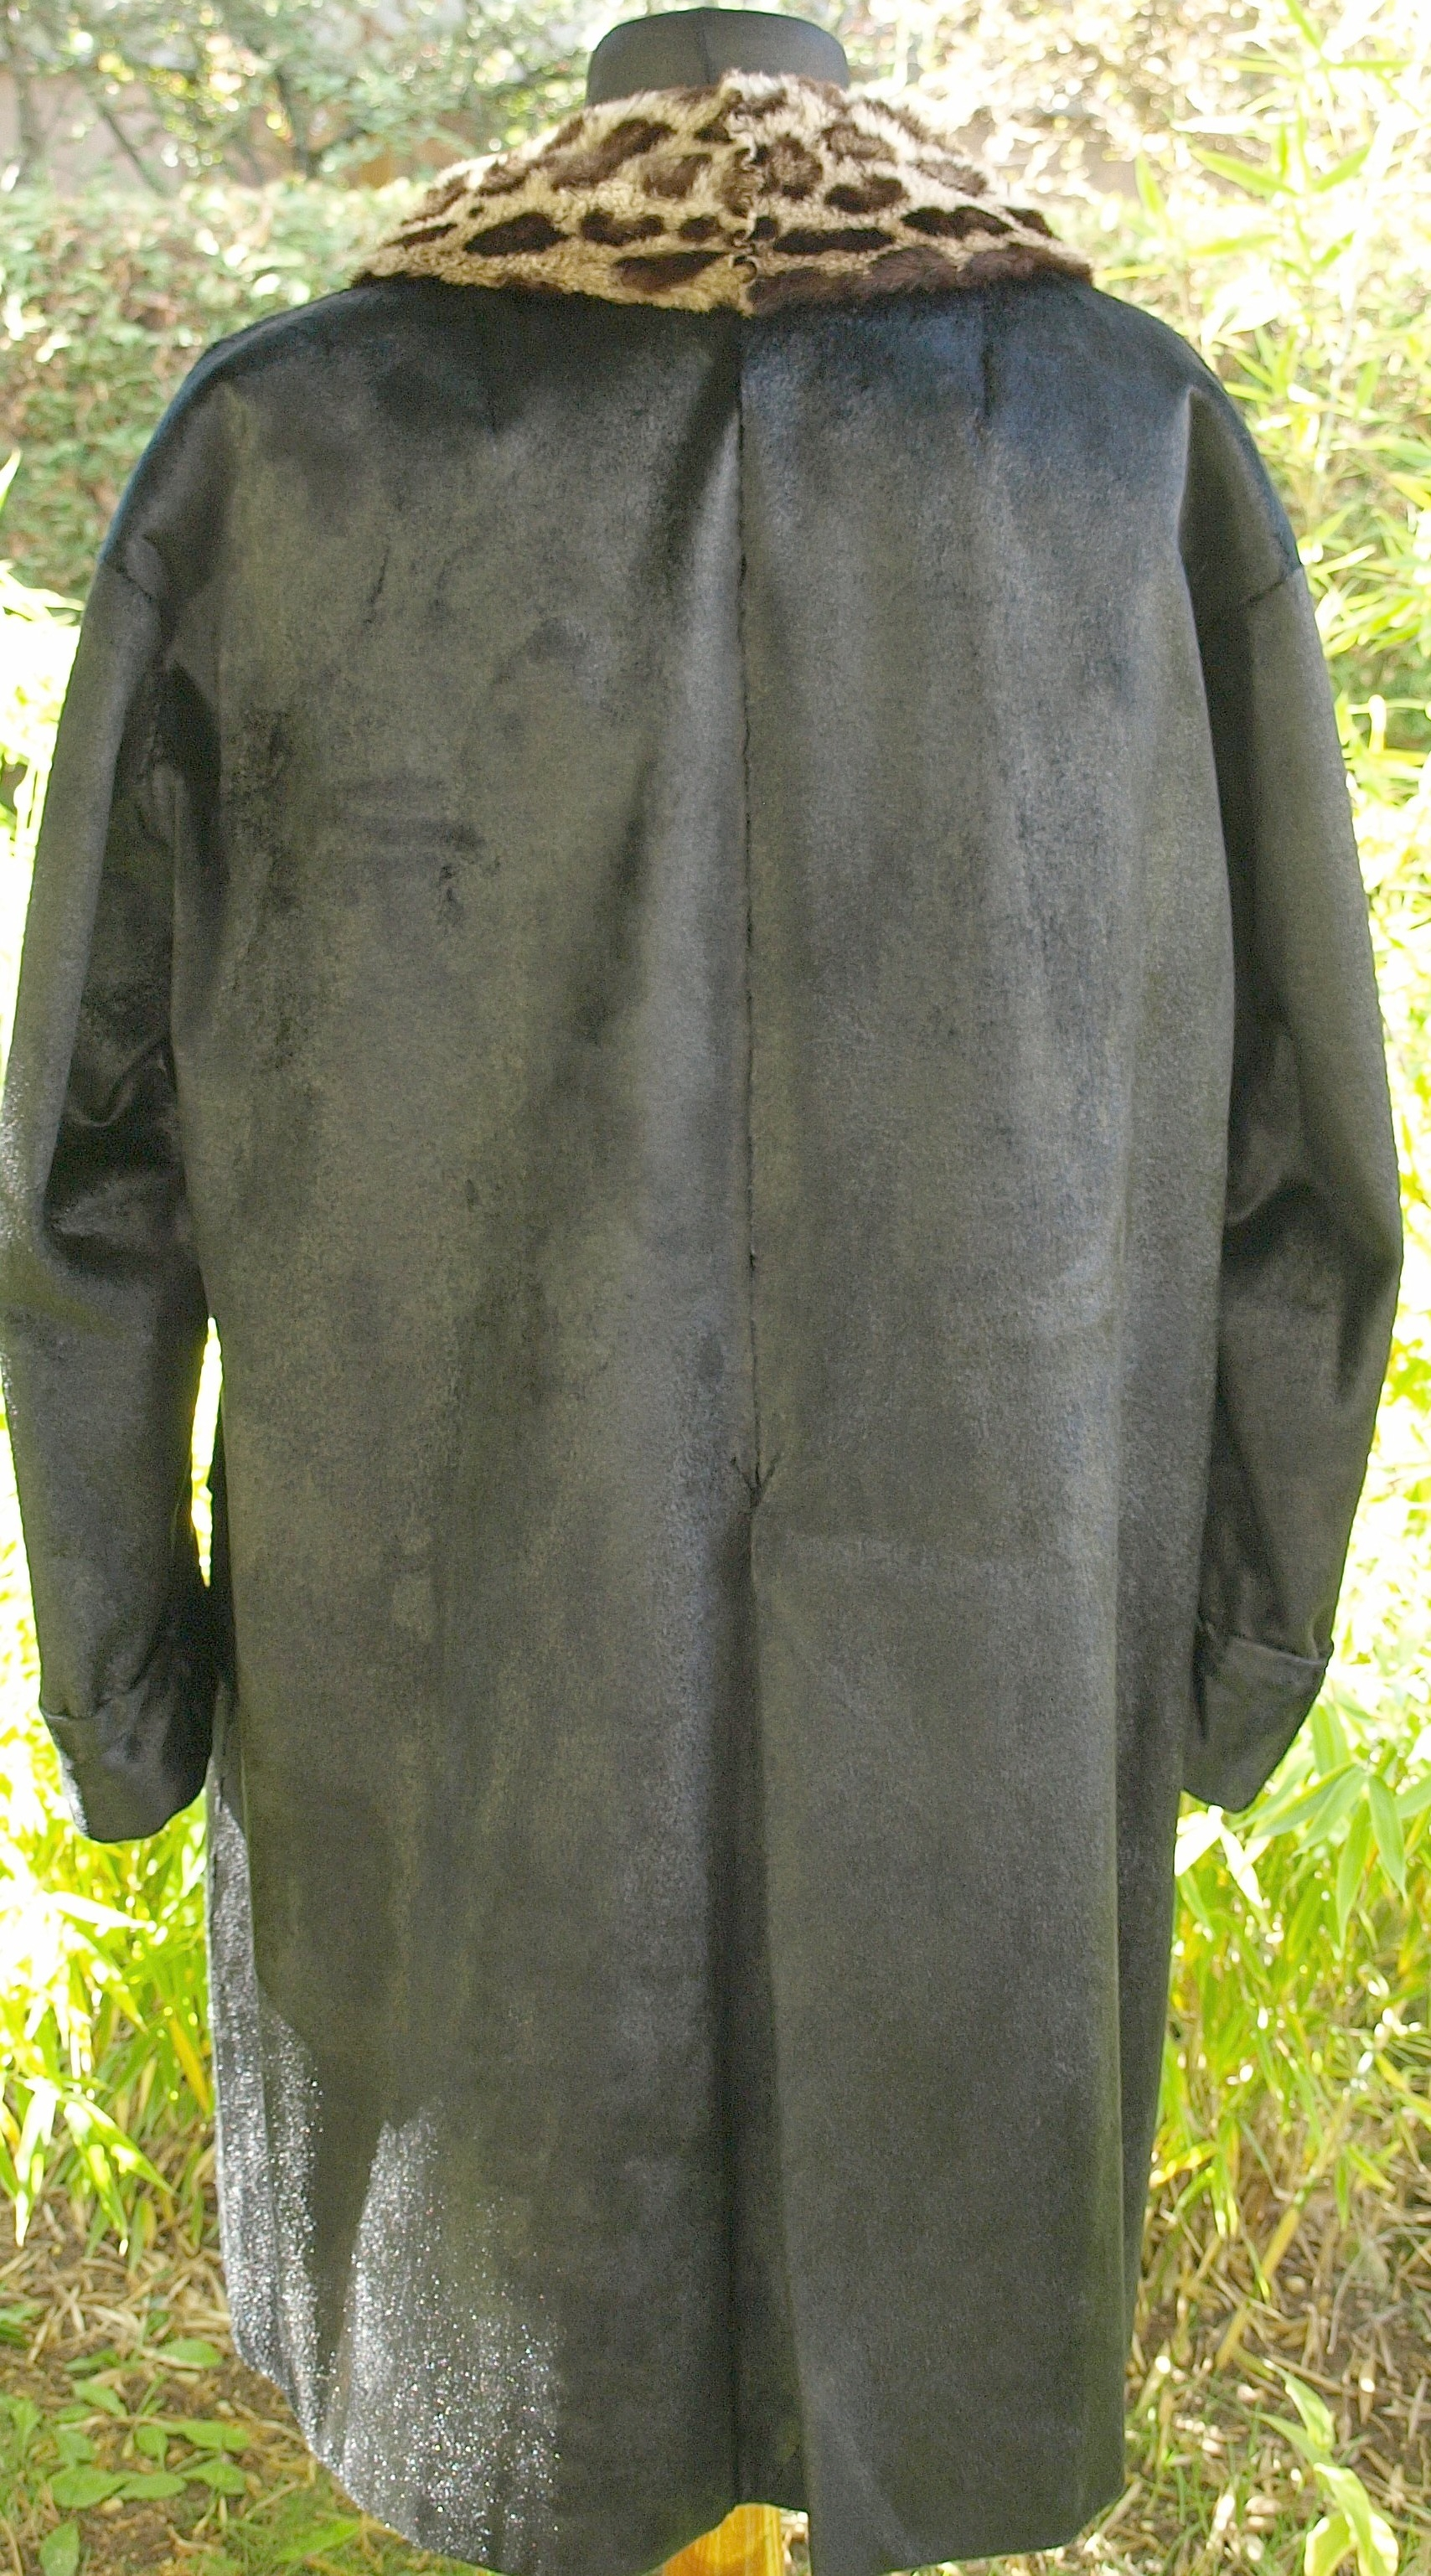 File:Lakoda Seal fur coat (6).jpg - Wikimedia Commons